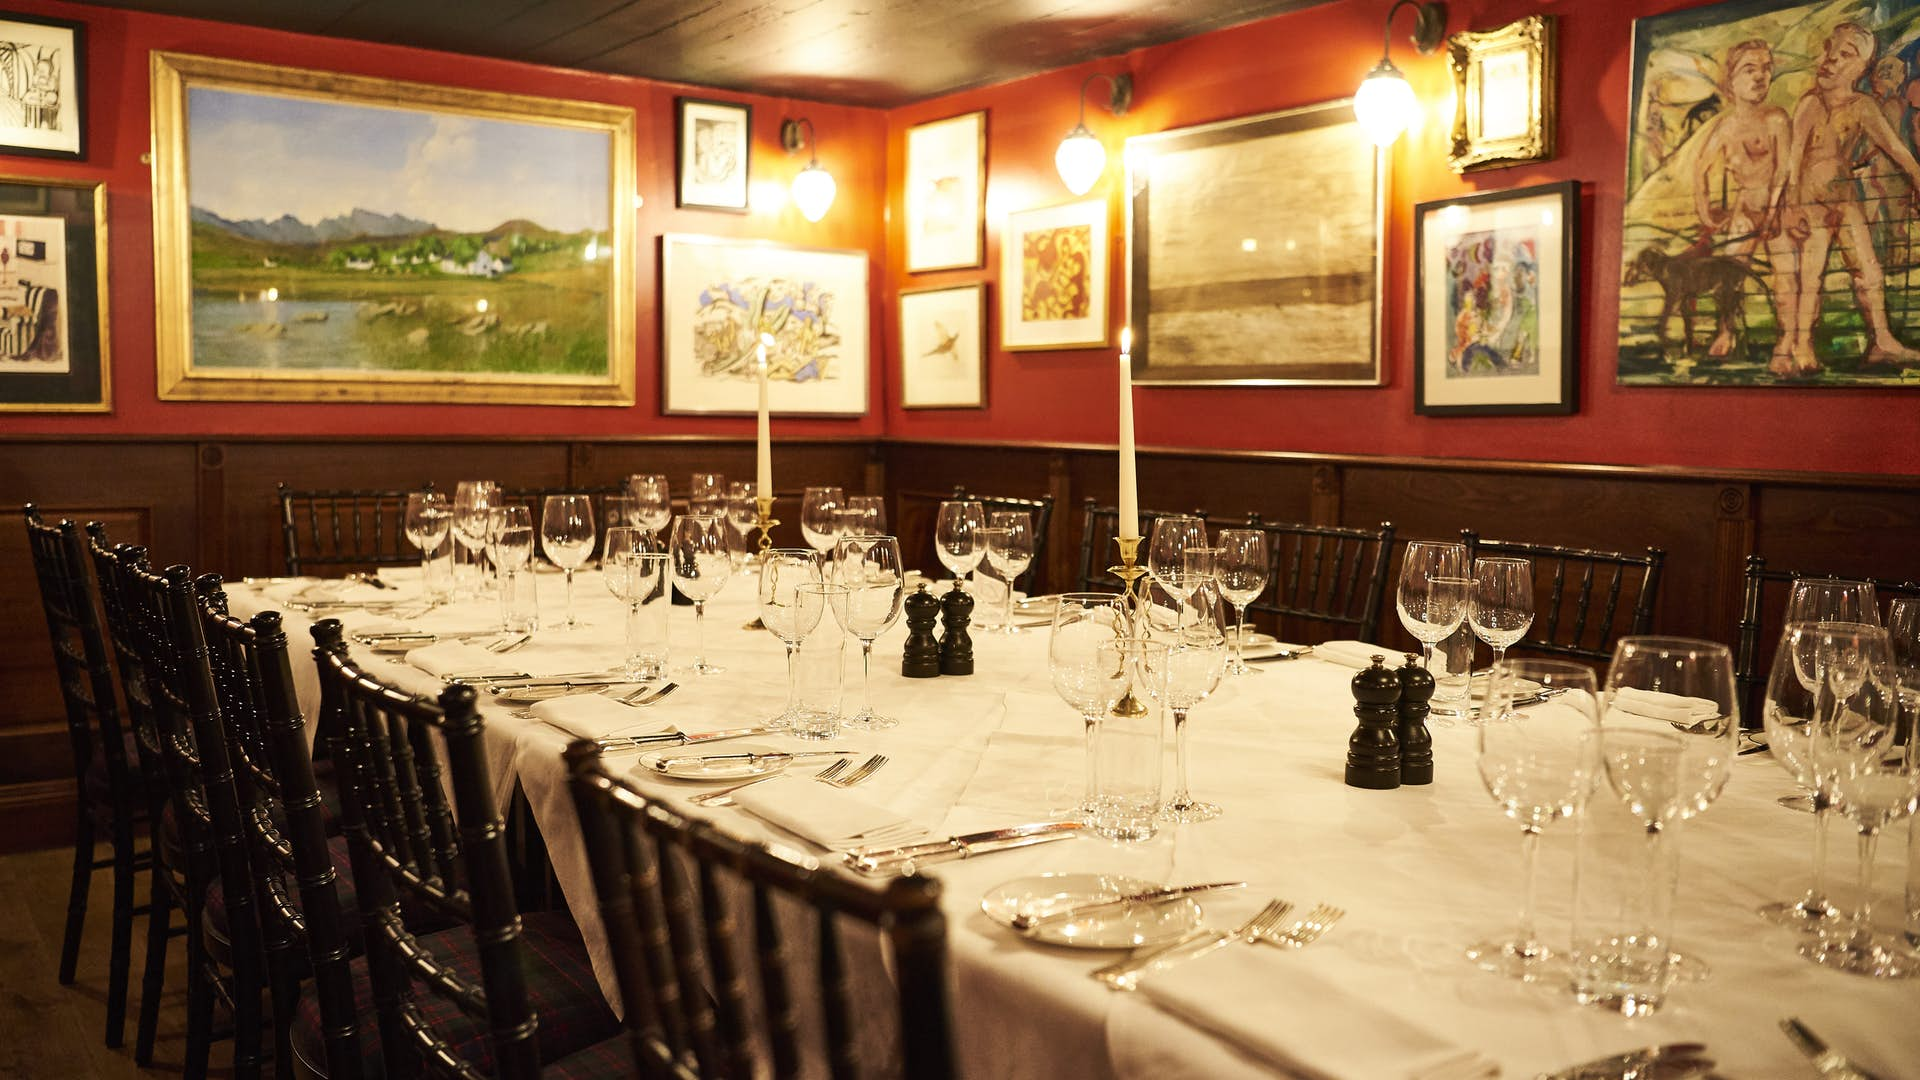 Lot 25 - Stanley Johnson at Boisdale Lunch for 10 at Boisdale, Mayfair hosted by the great Stanley Johnson.